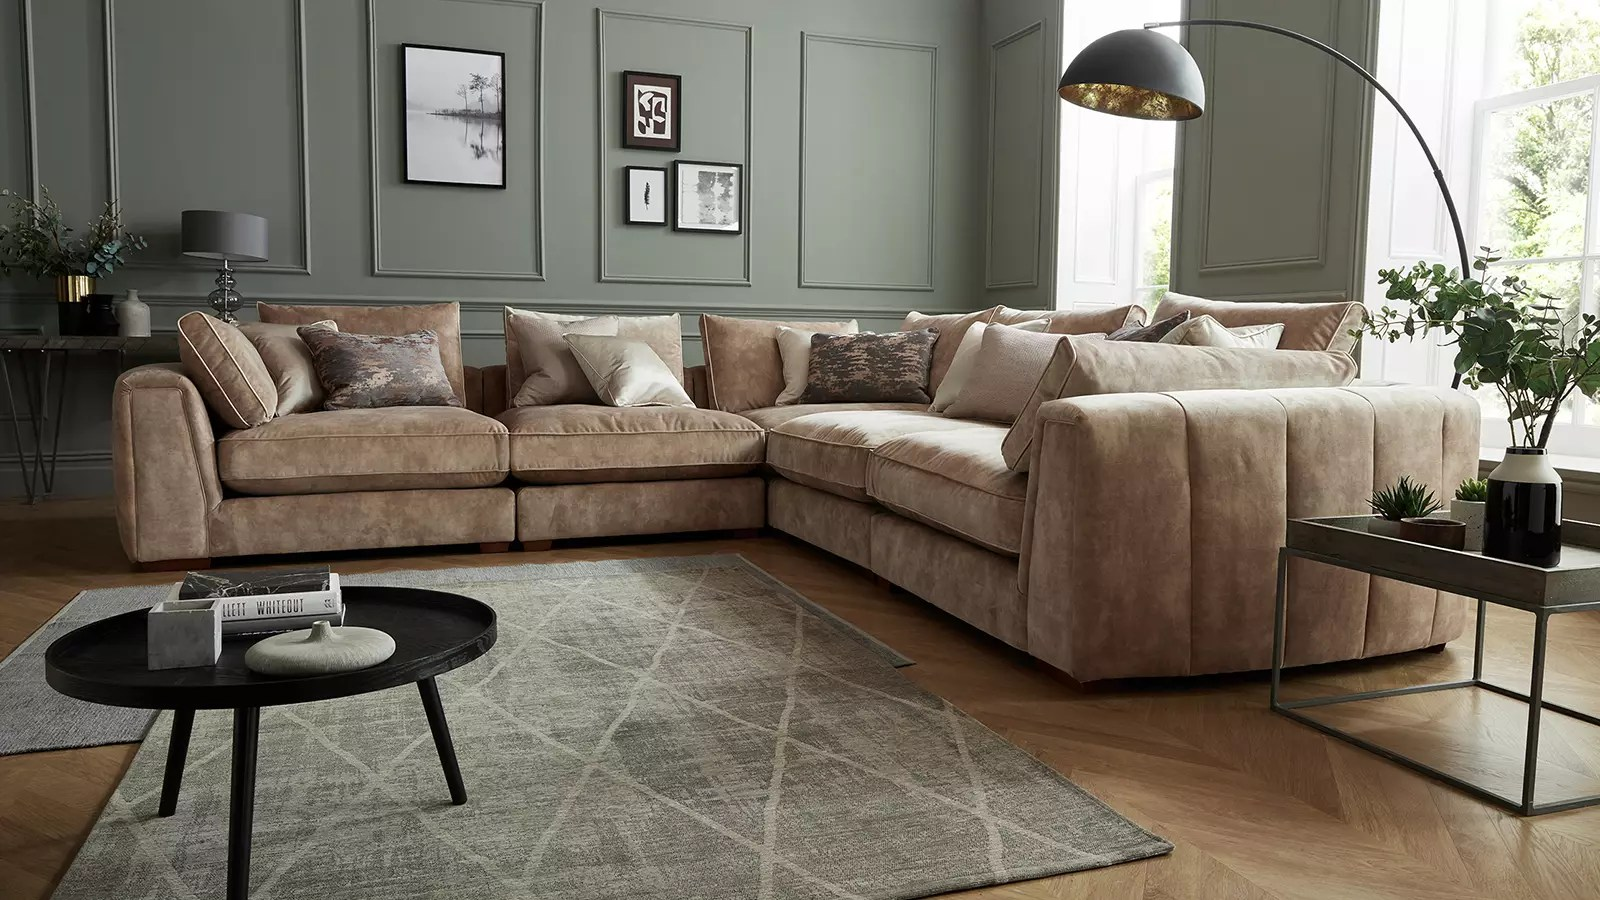 2 piece brown leather sofa riley latest arrivals sofology over 70 new ranges launched this year